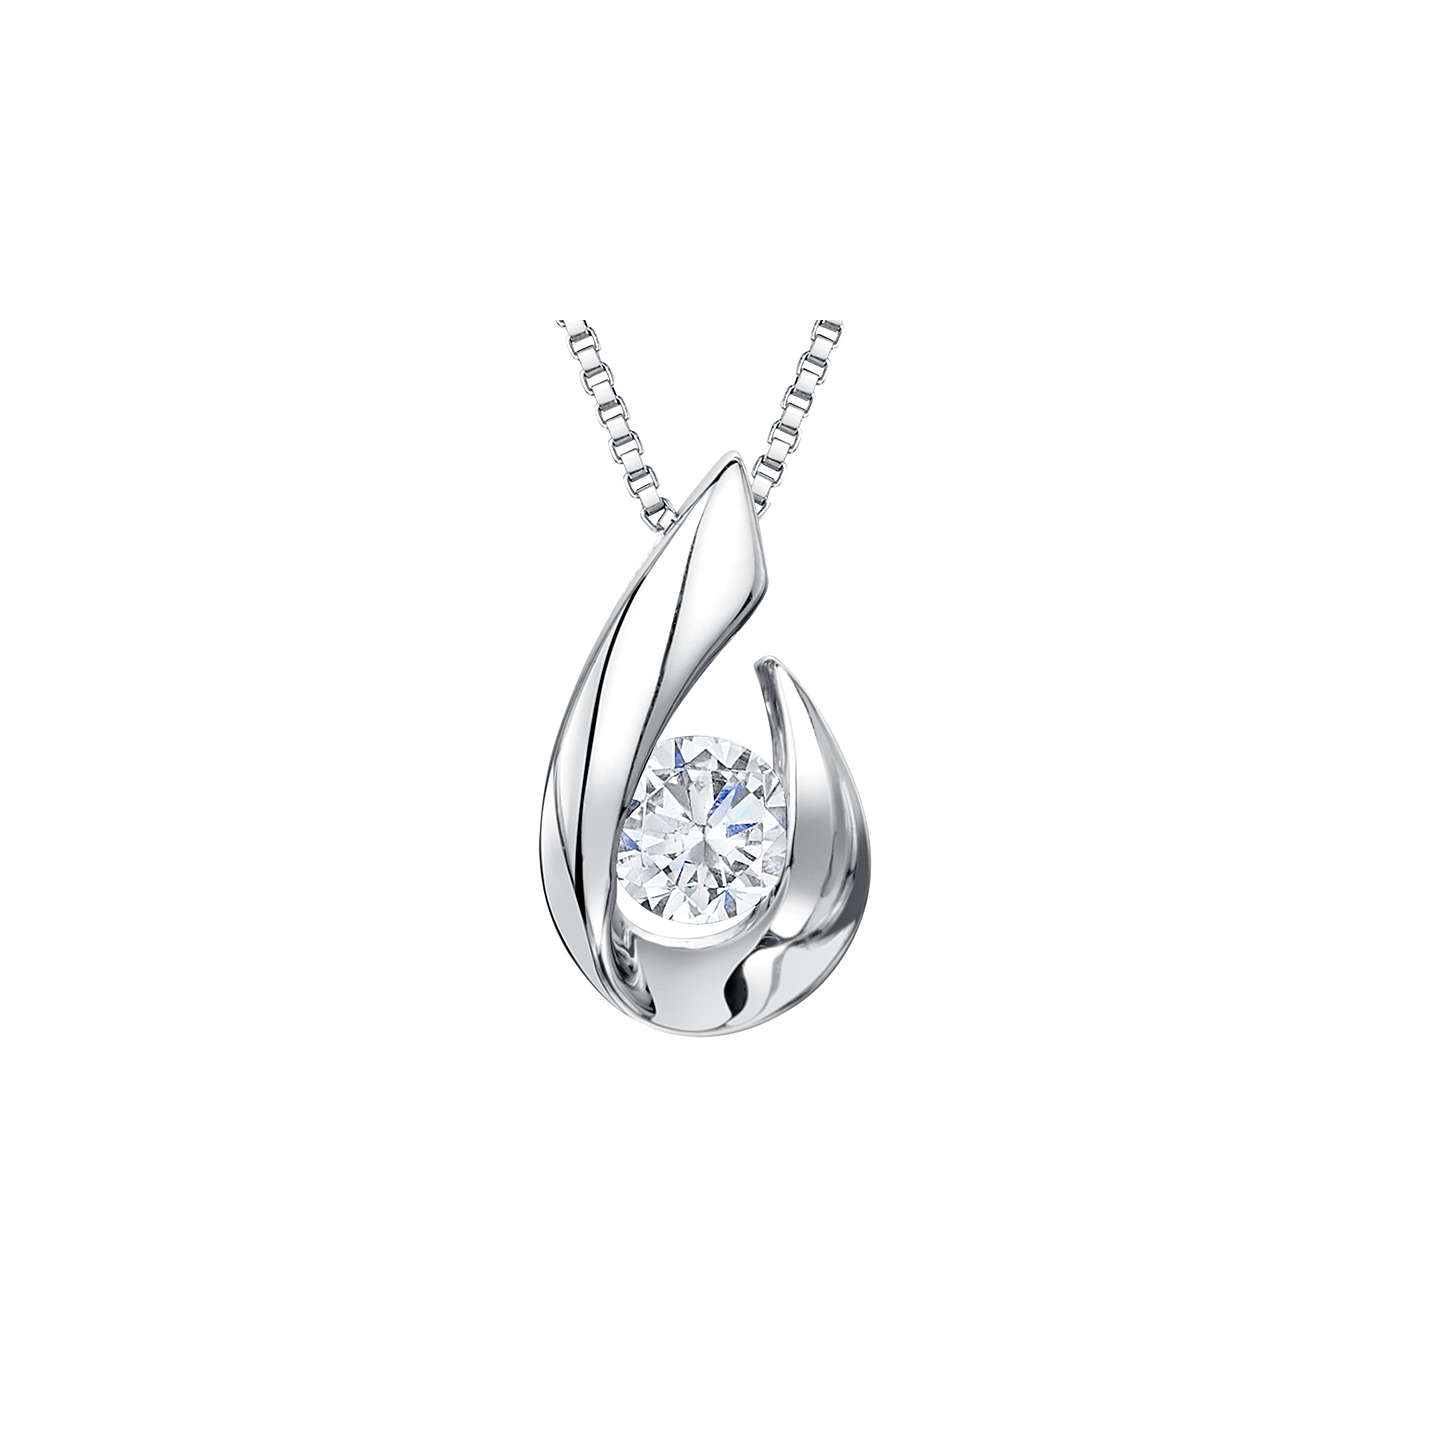 Jools by jenny brown silver hook cubic zirconia solitaire pendant buyjools by jenny brown silver hook cubic zirconia solitaire pendant necklace silver online at johnlewis aloadofball Images